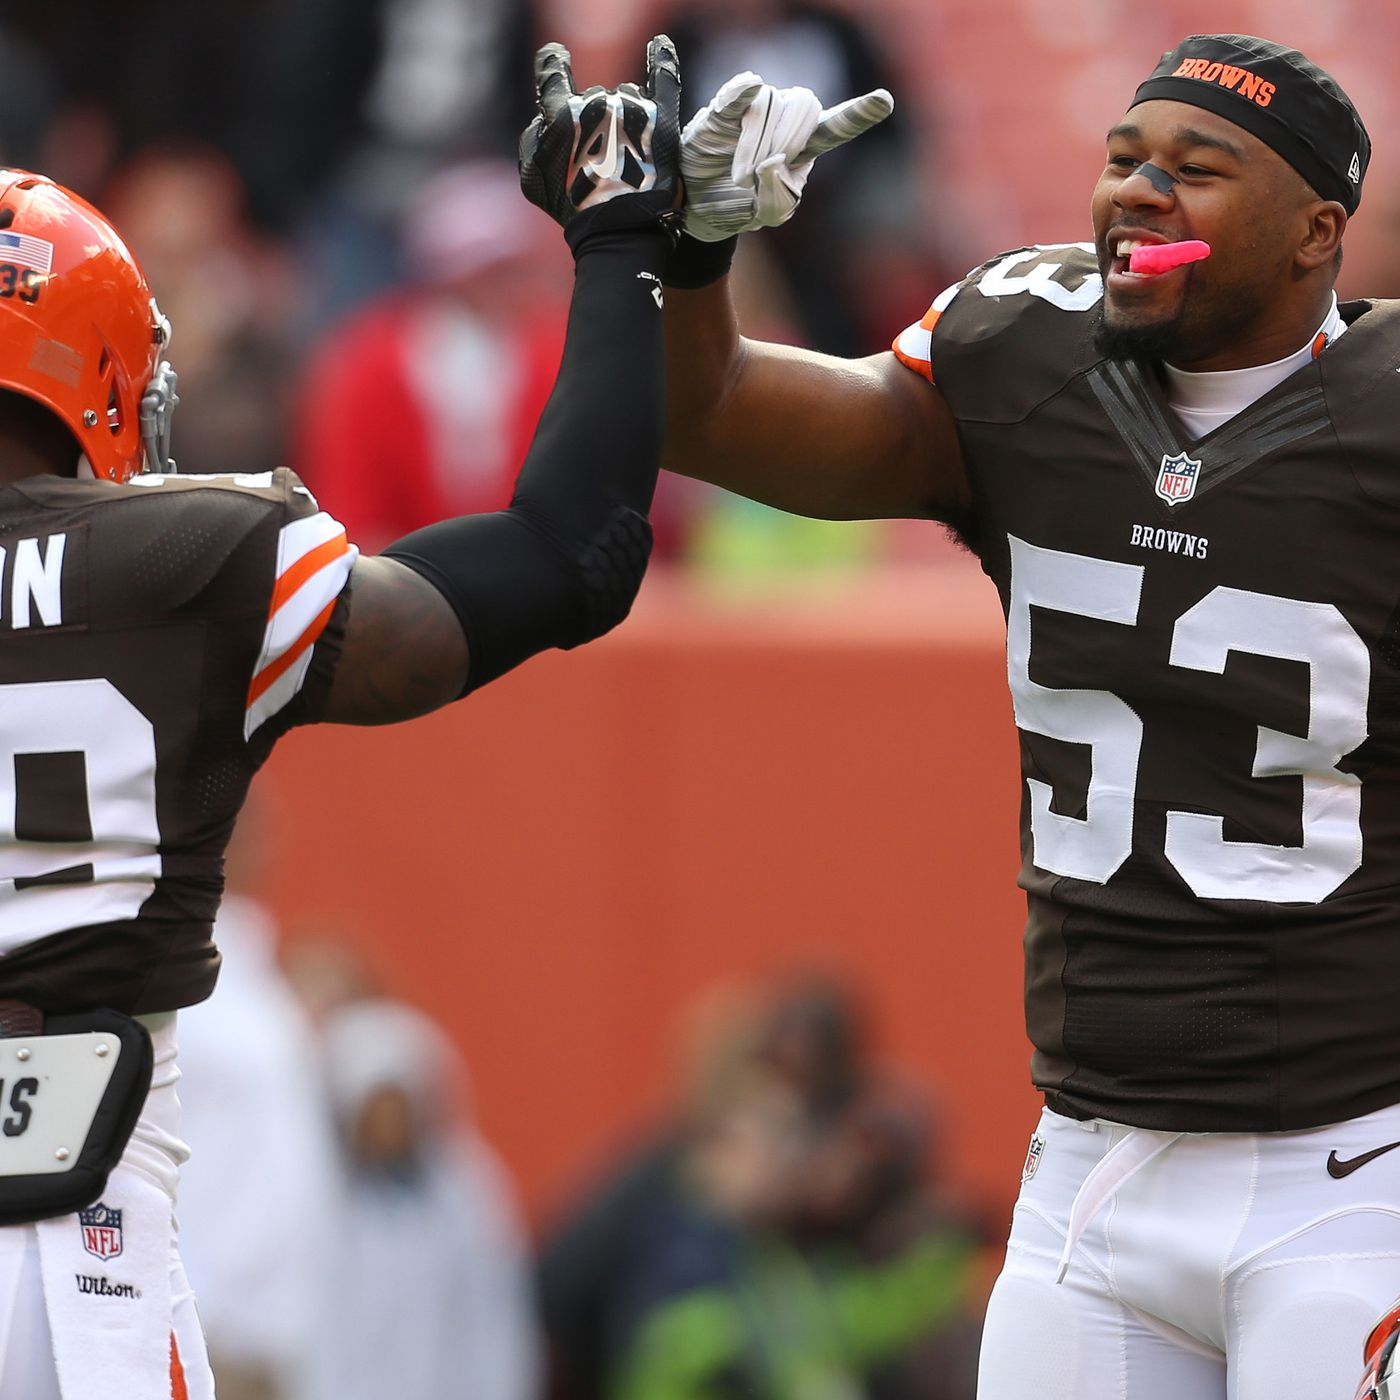 Browns FS Tashaun Gipson Ranked No. 67 on the NFL's Top 100 List ...